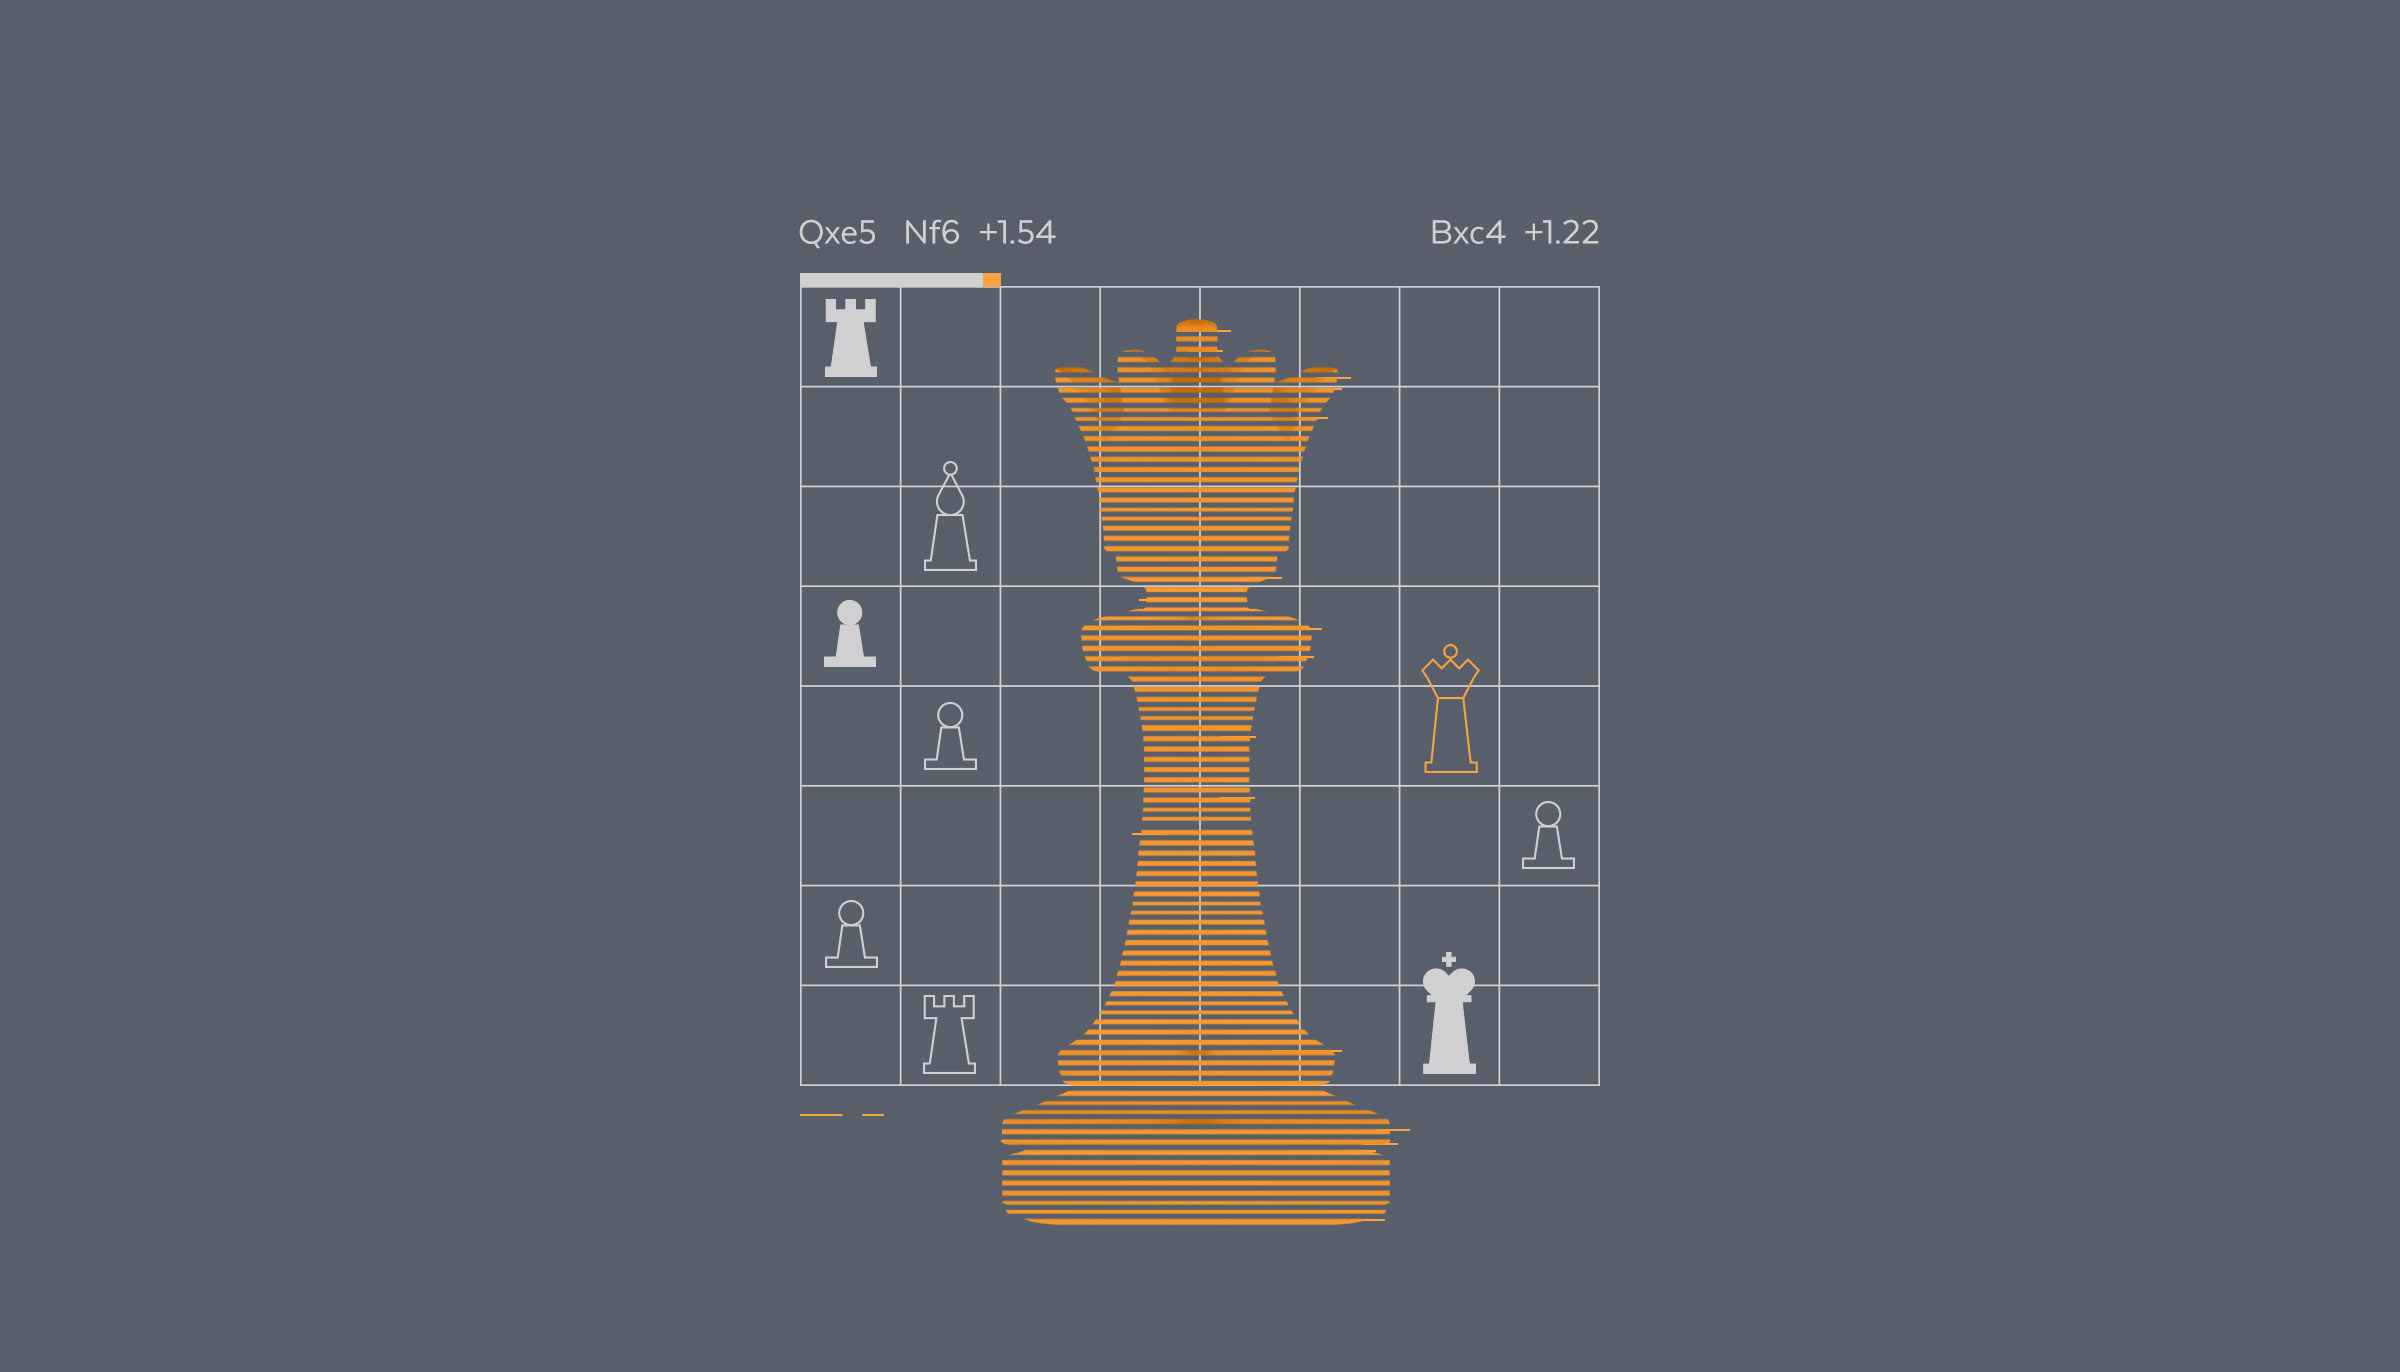 Lockdown Sends Chess (and Data) Soaring